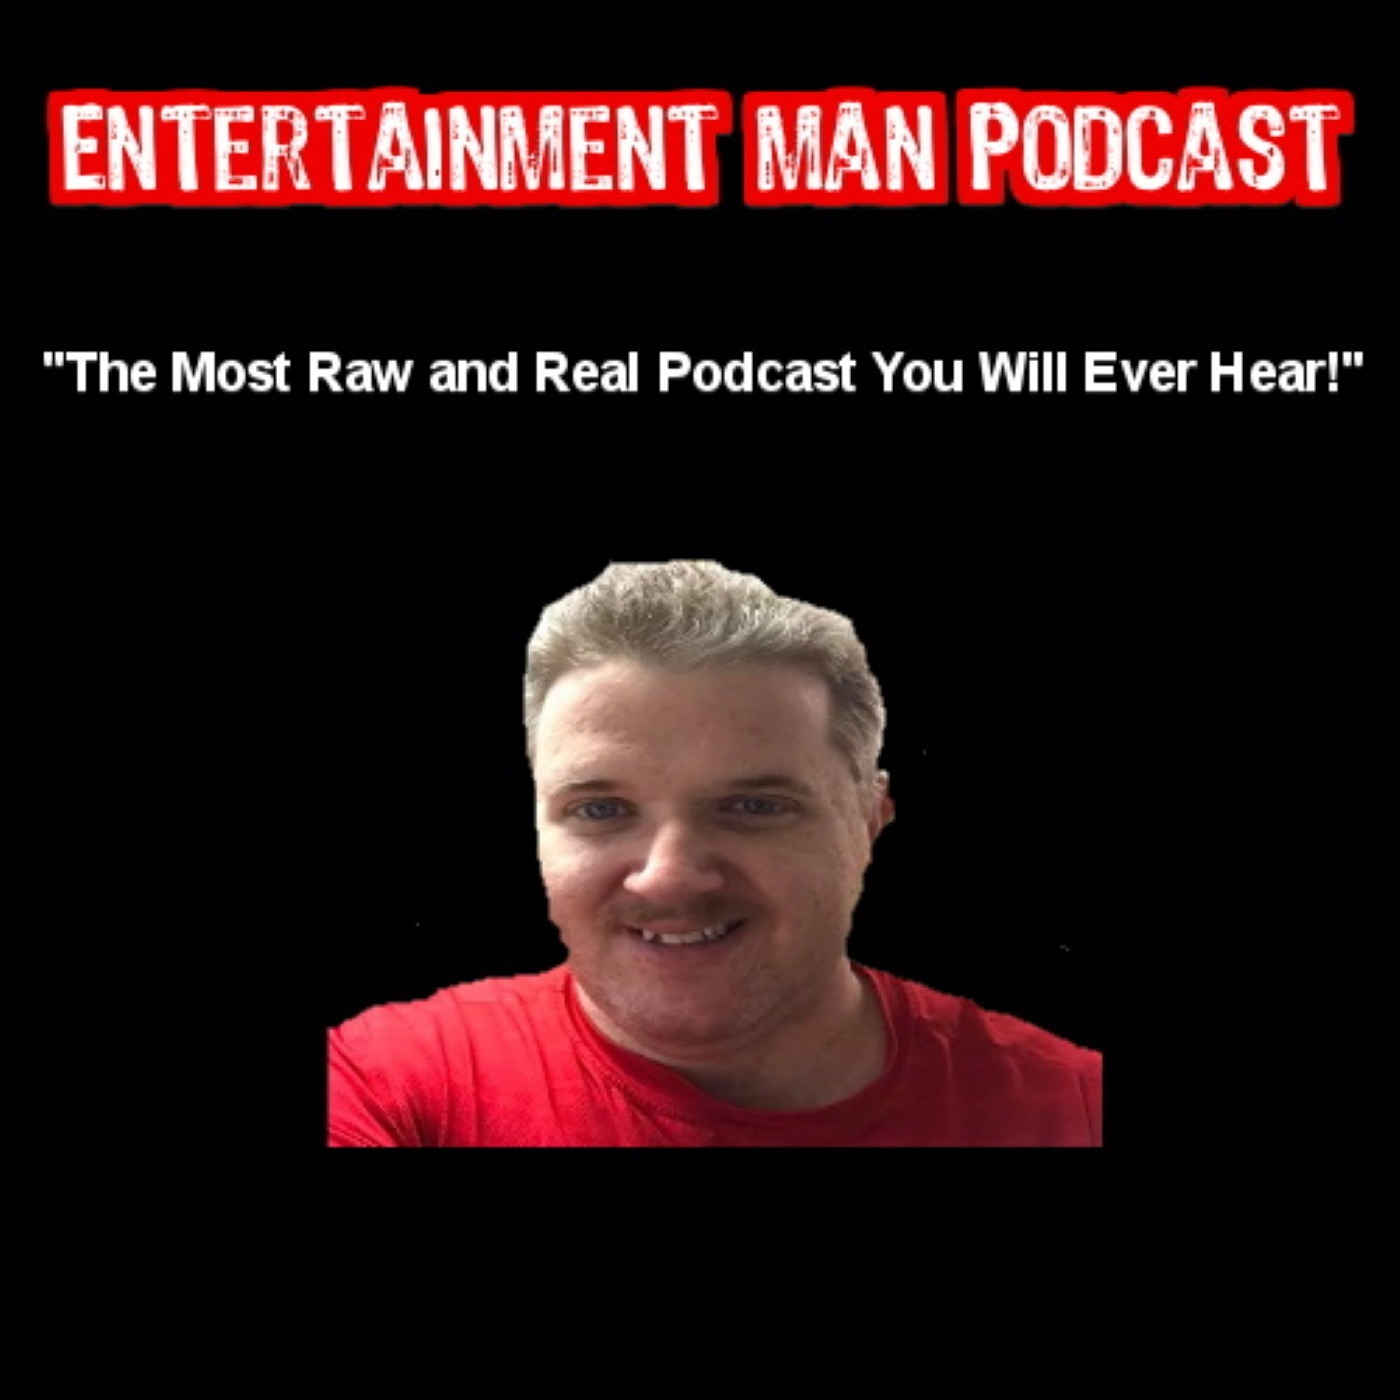 Entertainment Man Podcast